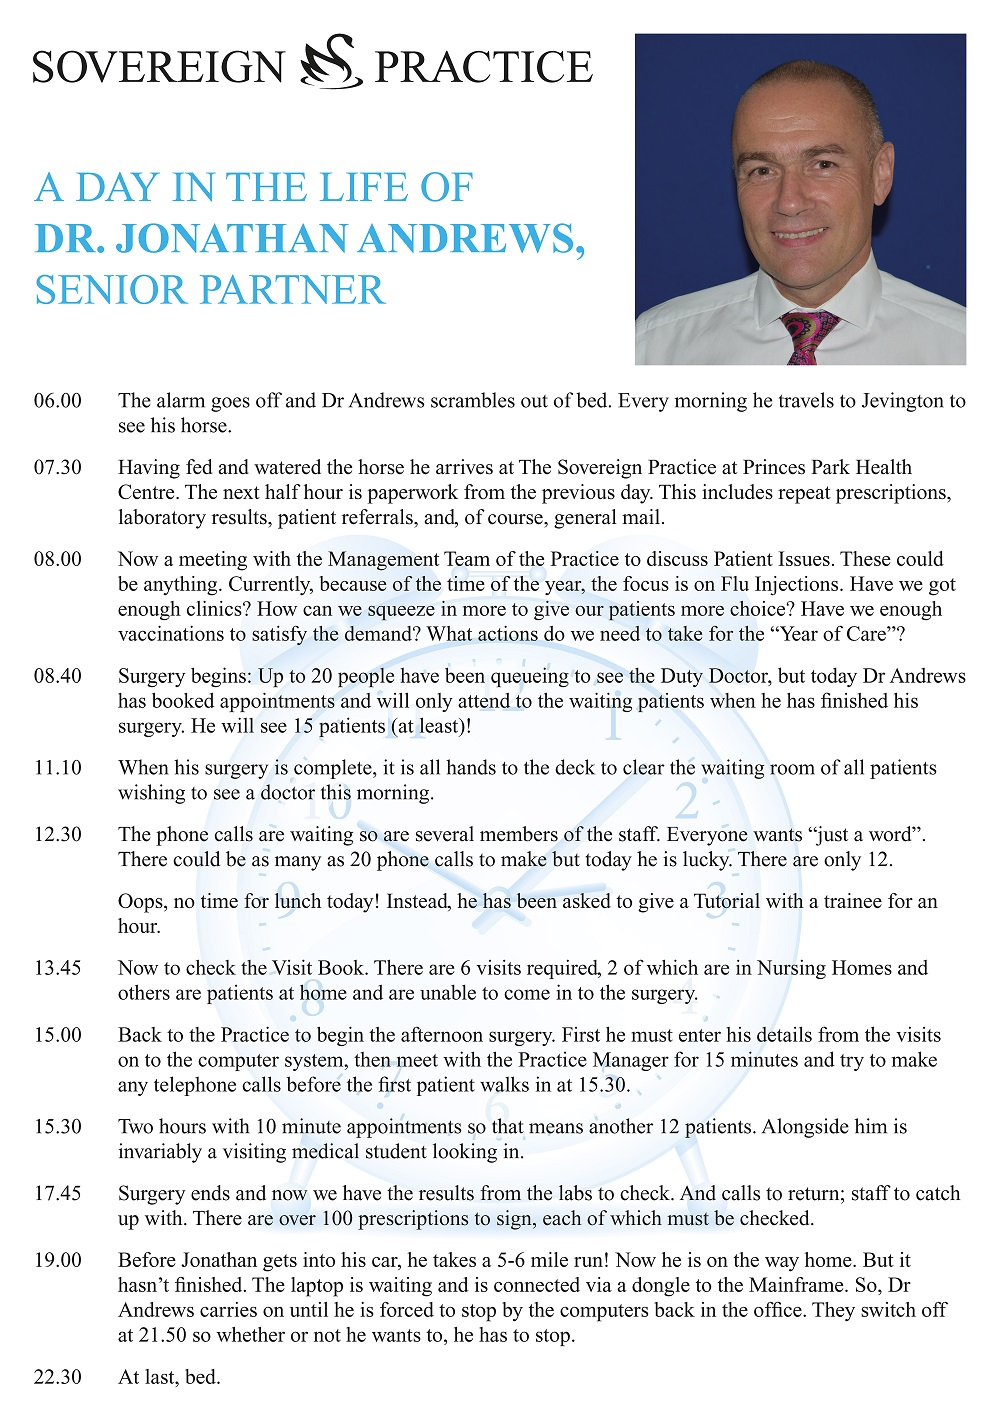 A Day in the Life of Dr Andrews